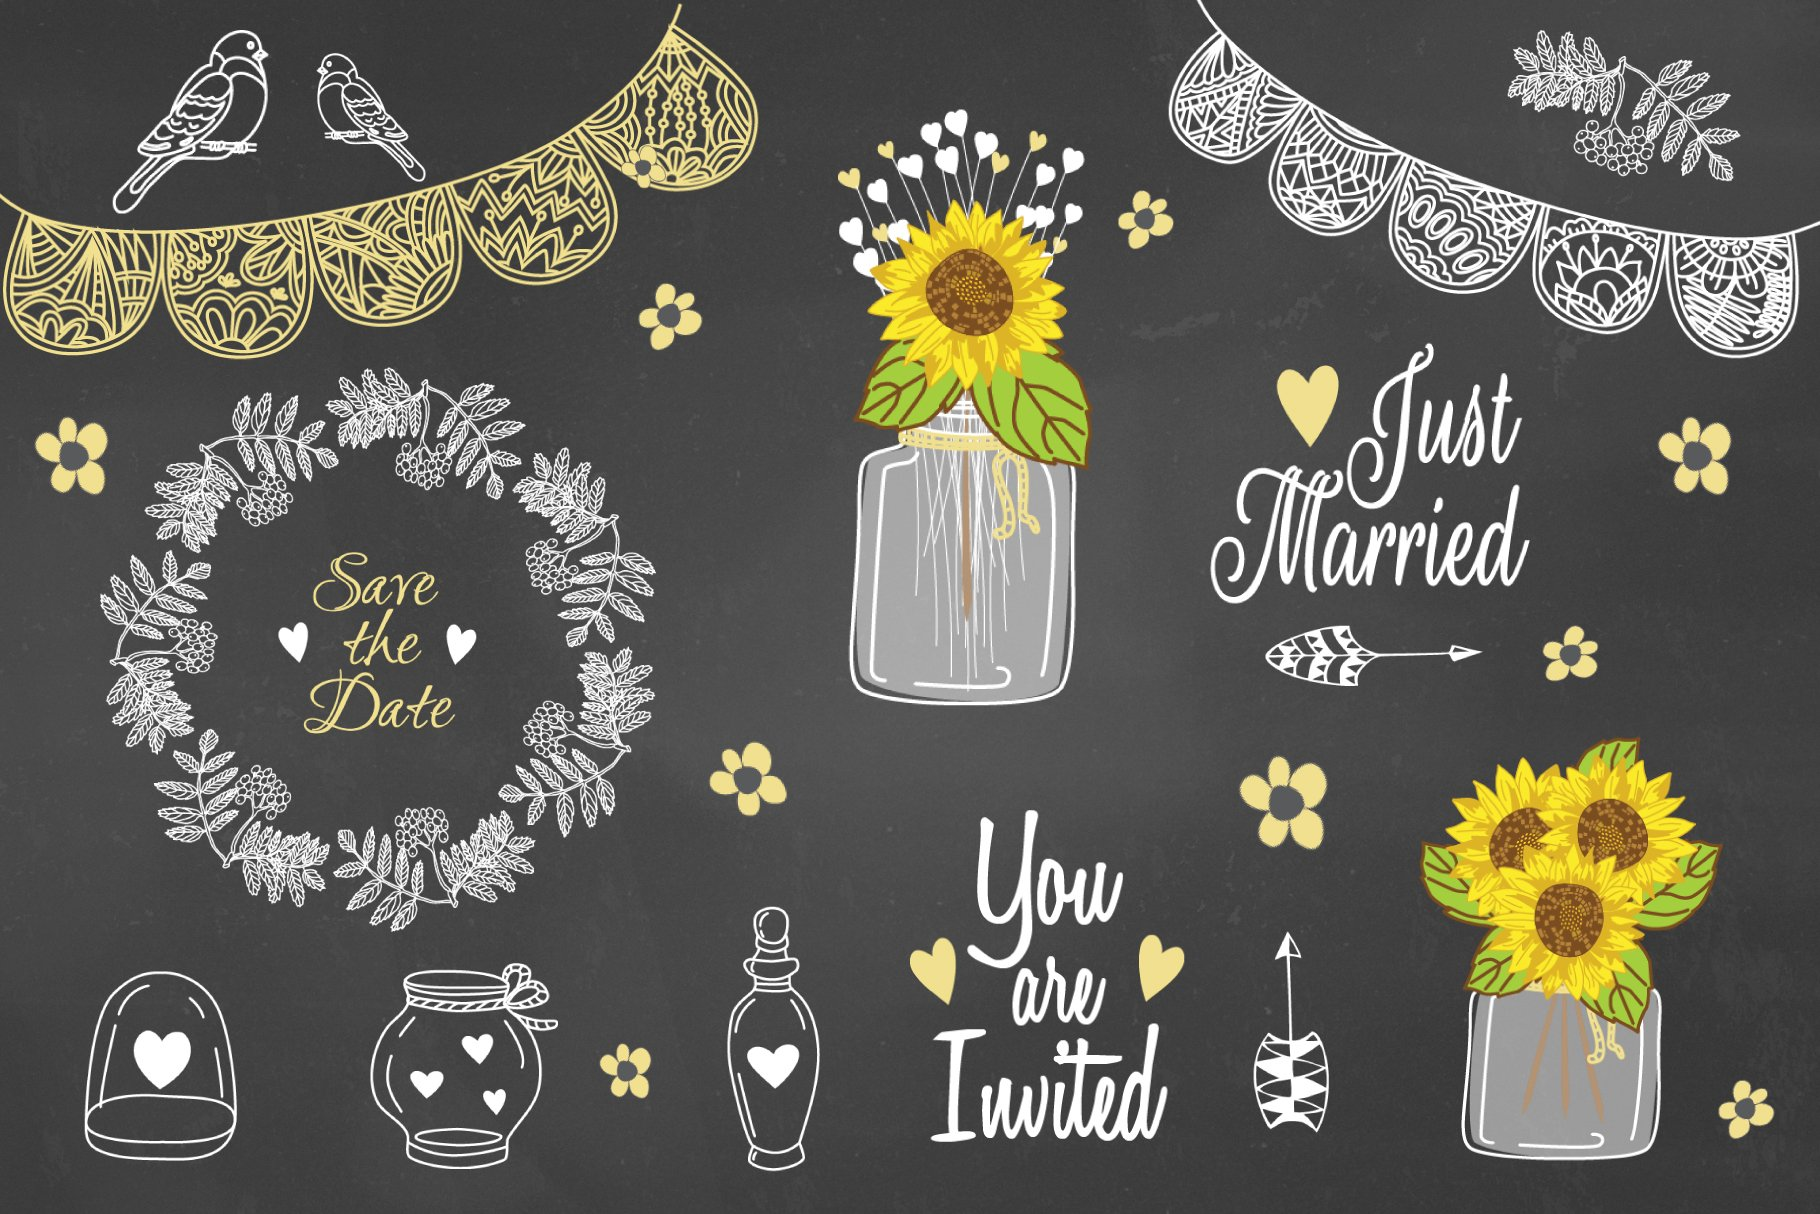 Sunflower Mason Jar Rustic Clipart Graphic Objects Creative Market